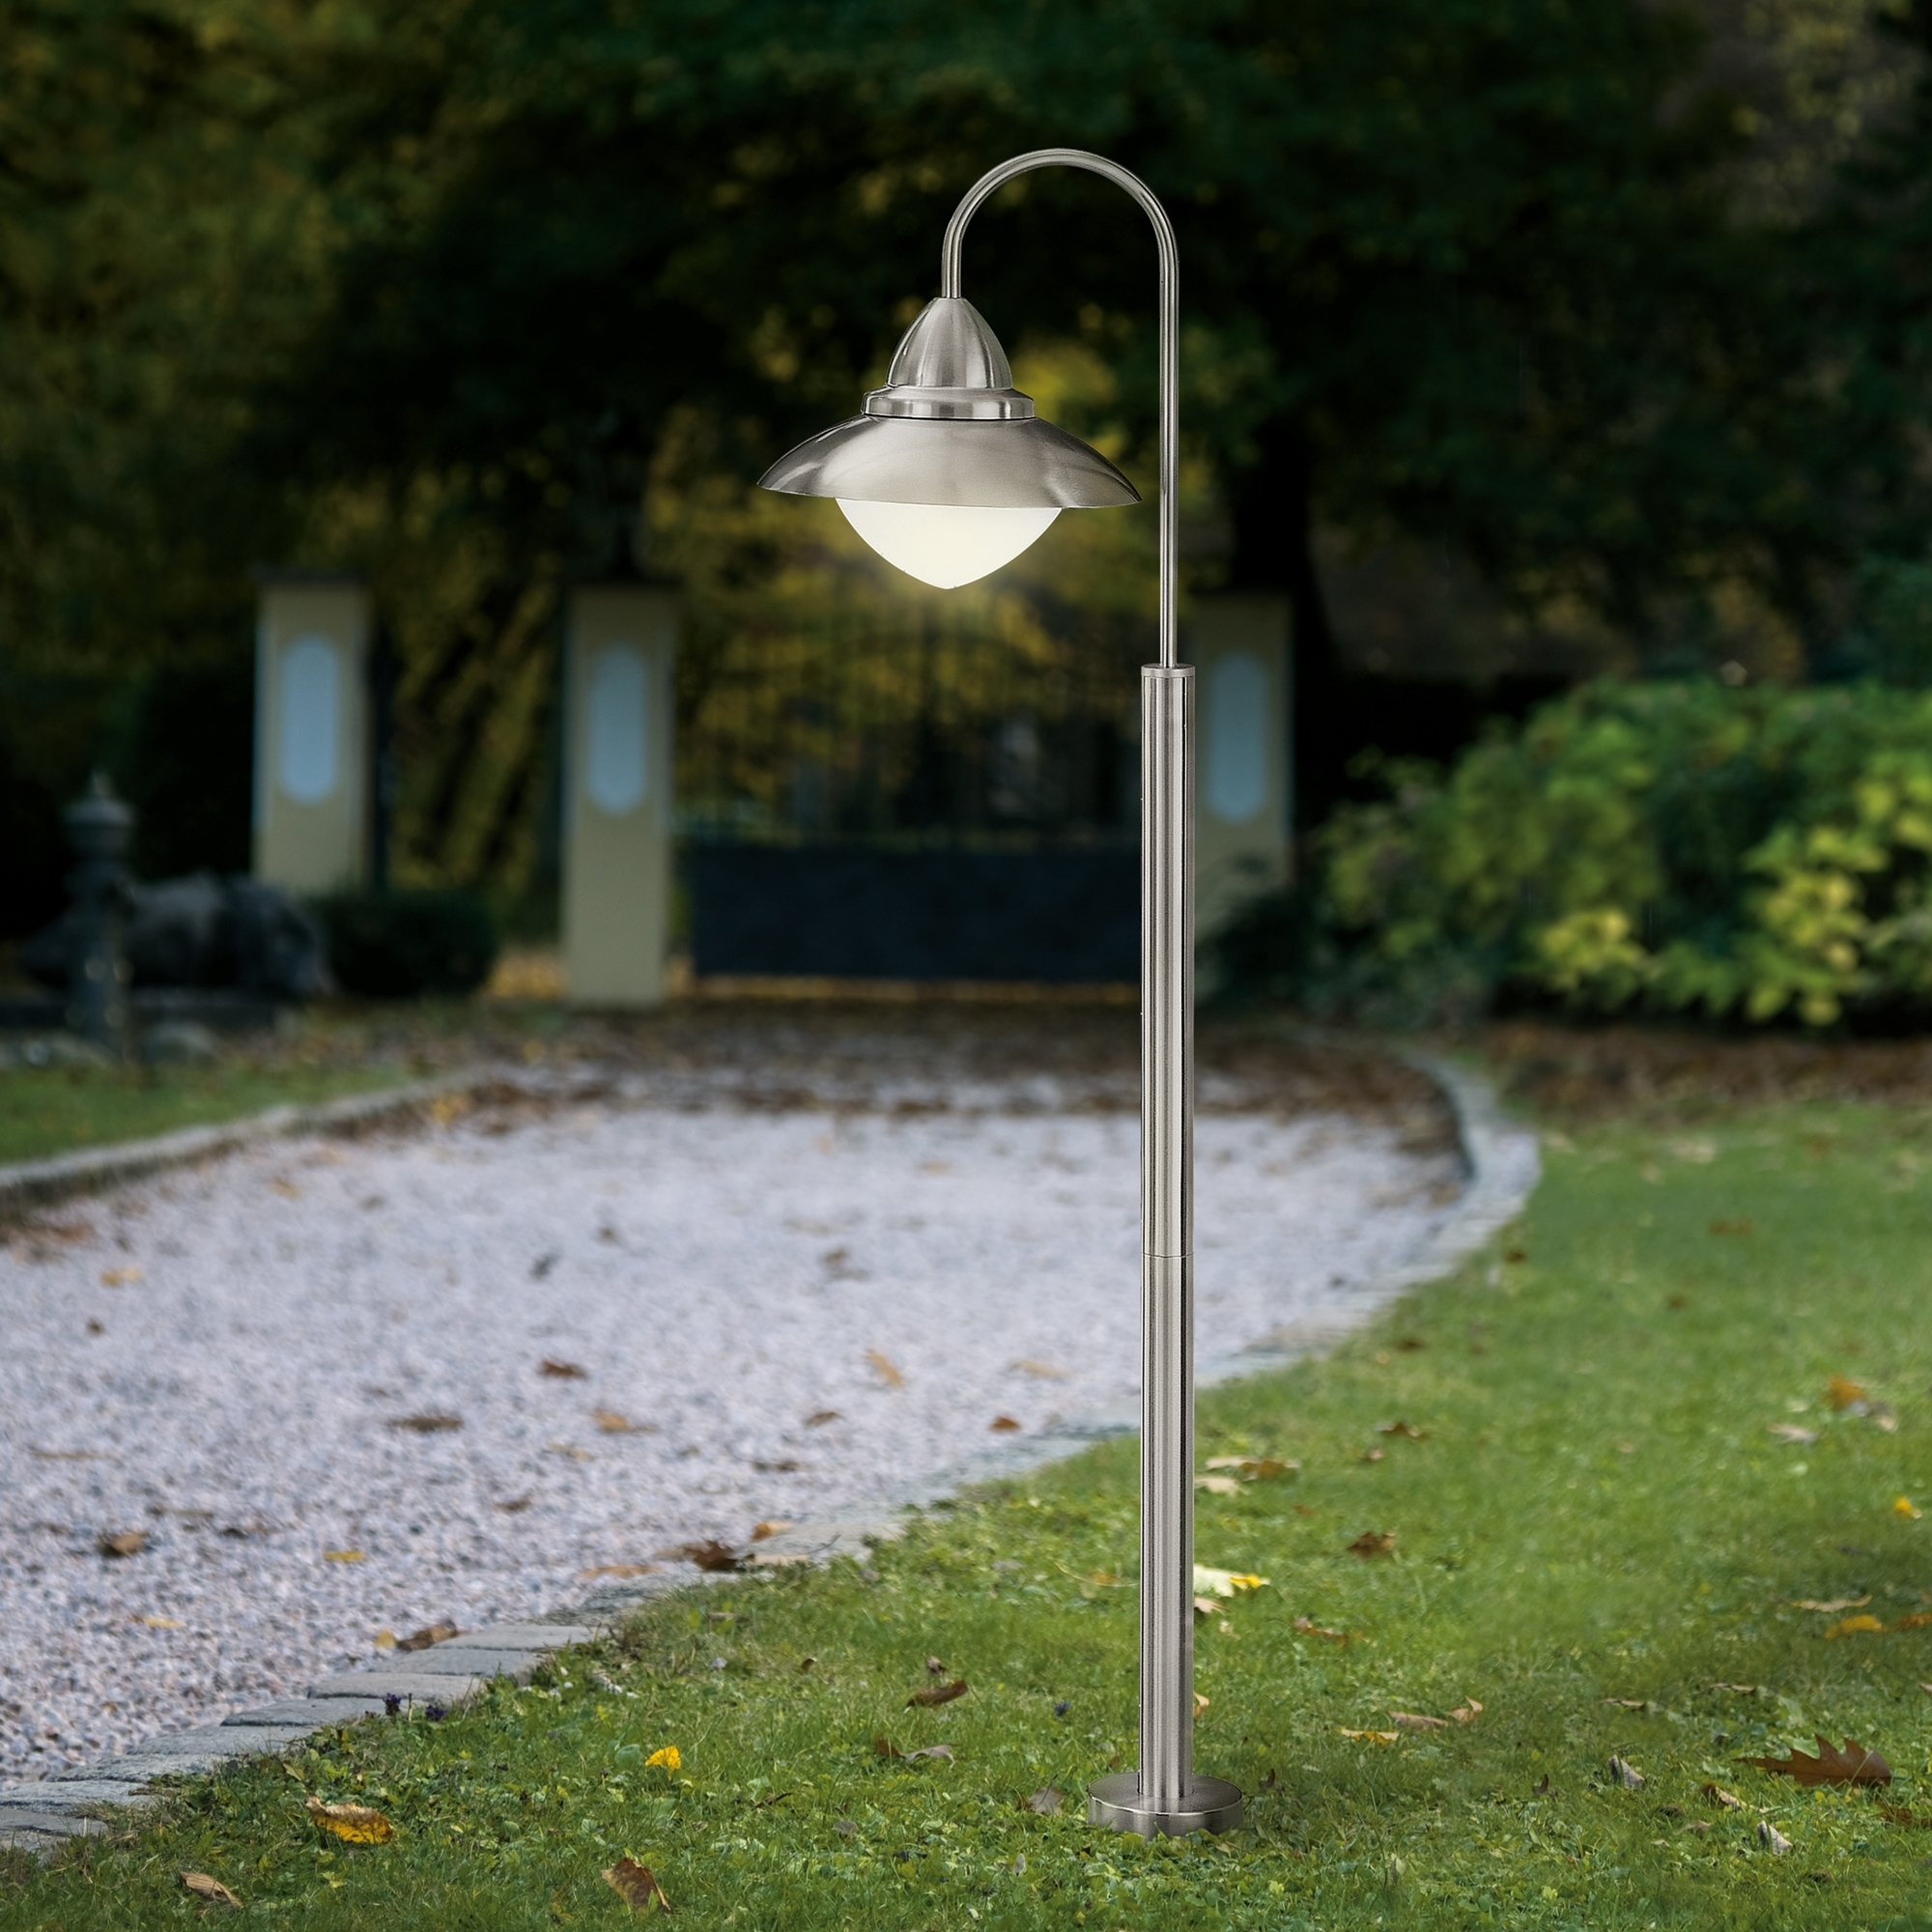 87105 / Sidney / Outdoor Lighting / Main Collections / Products Inside Eglo Outdoor Lighting (View 2 of 15)